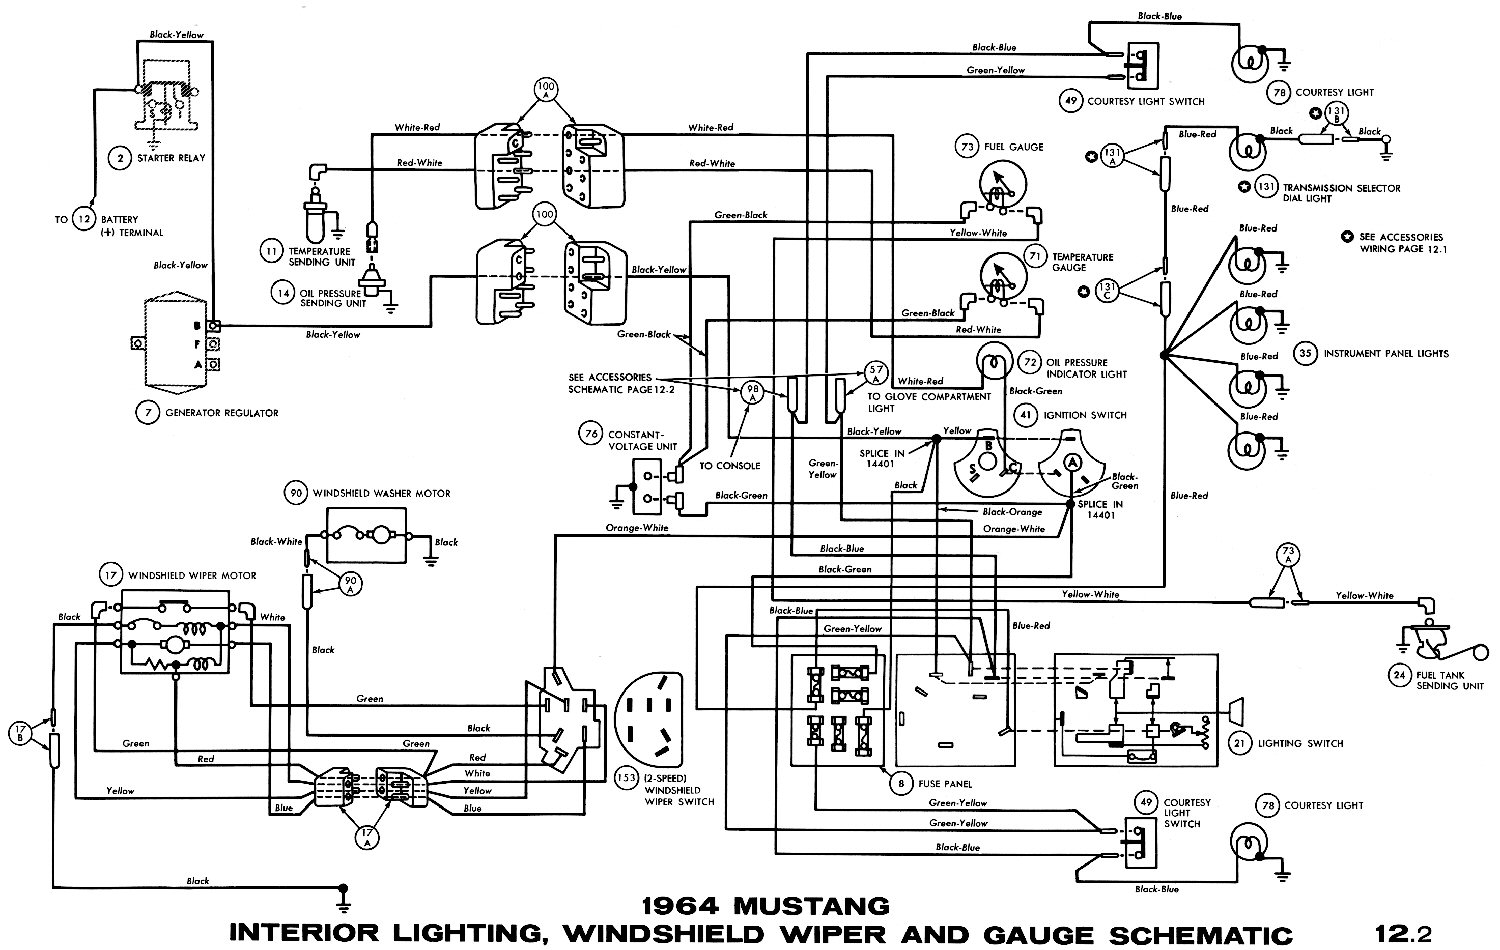 1964k 1964 mustang wiring diagrams average joe restoration Ford 4600 Wiring Schematic at n-0.co